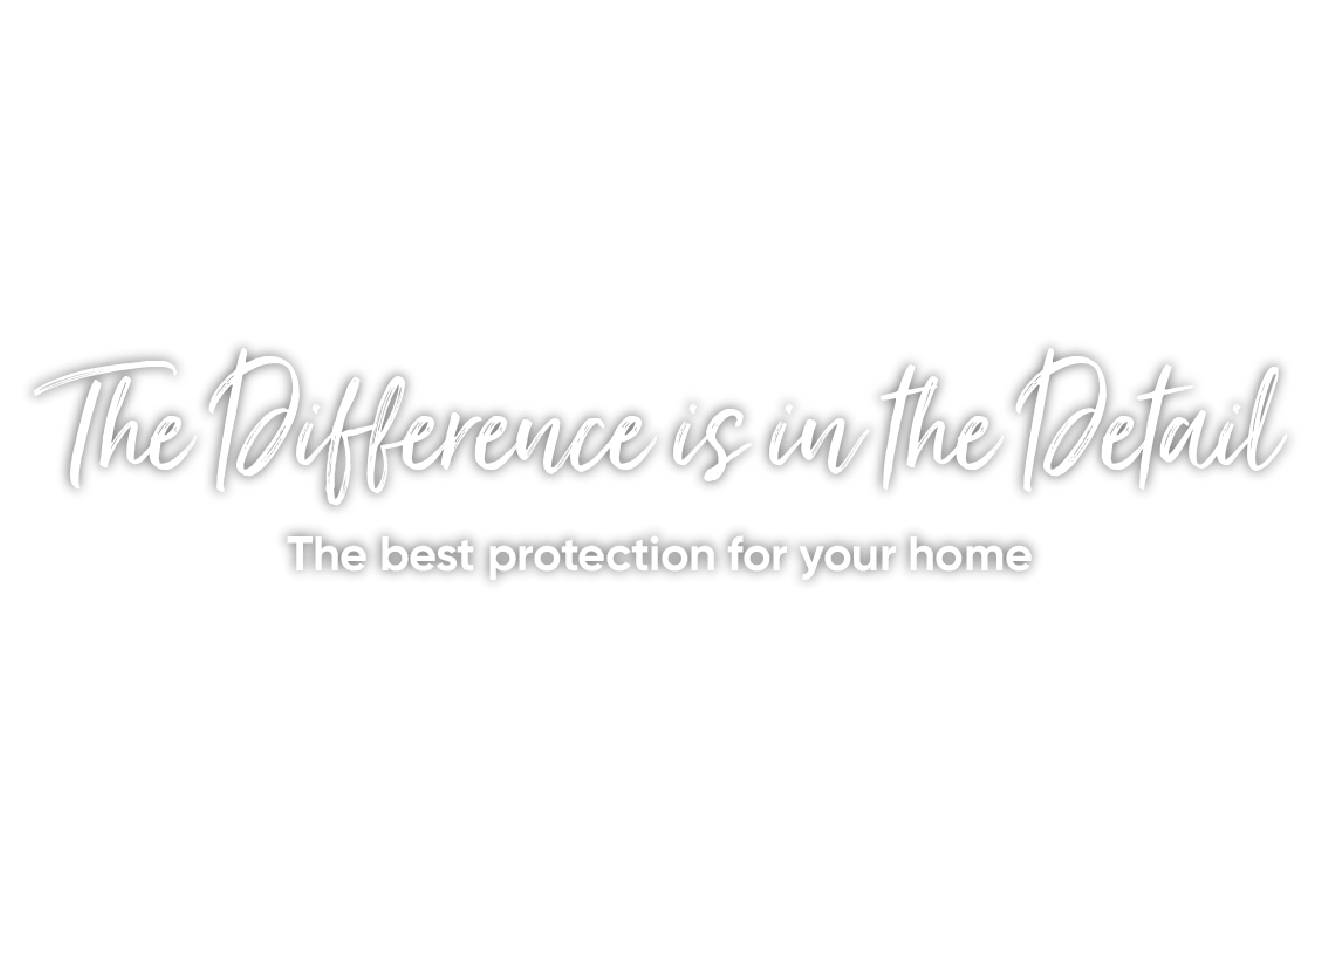 The best protection for your home